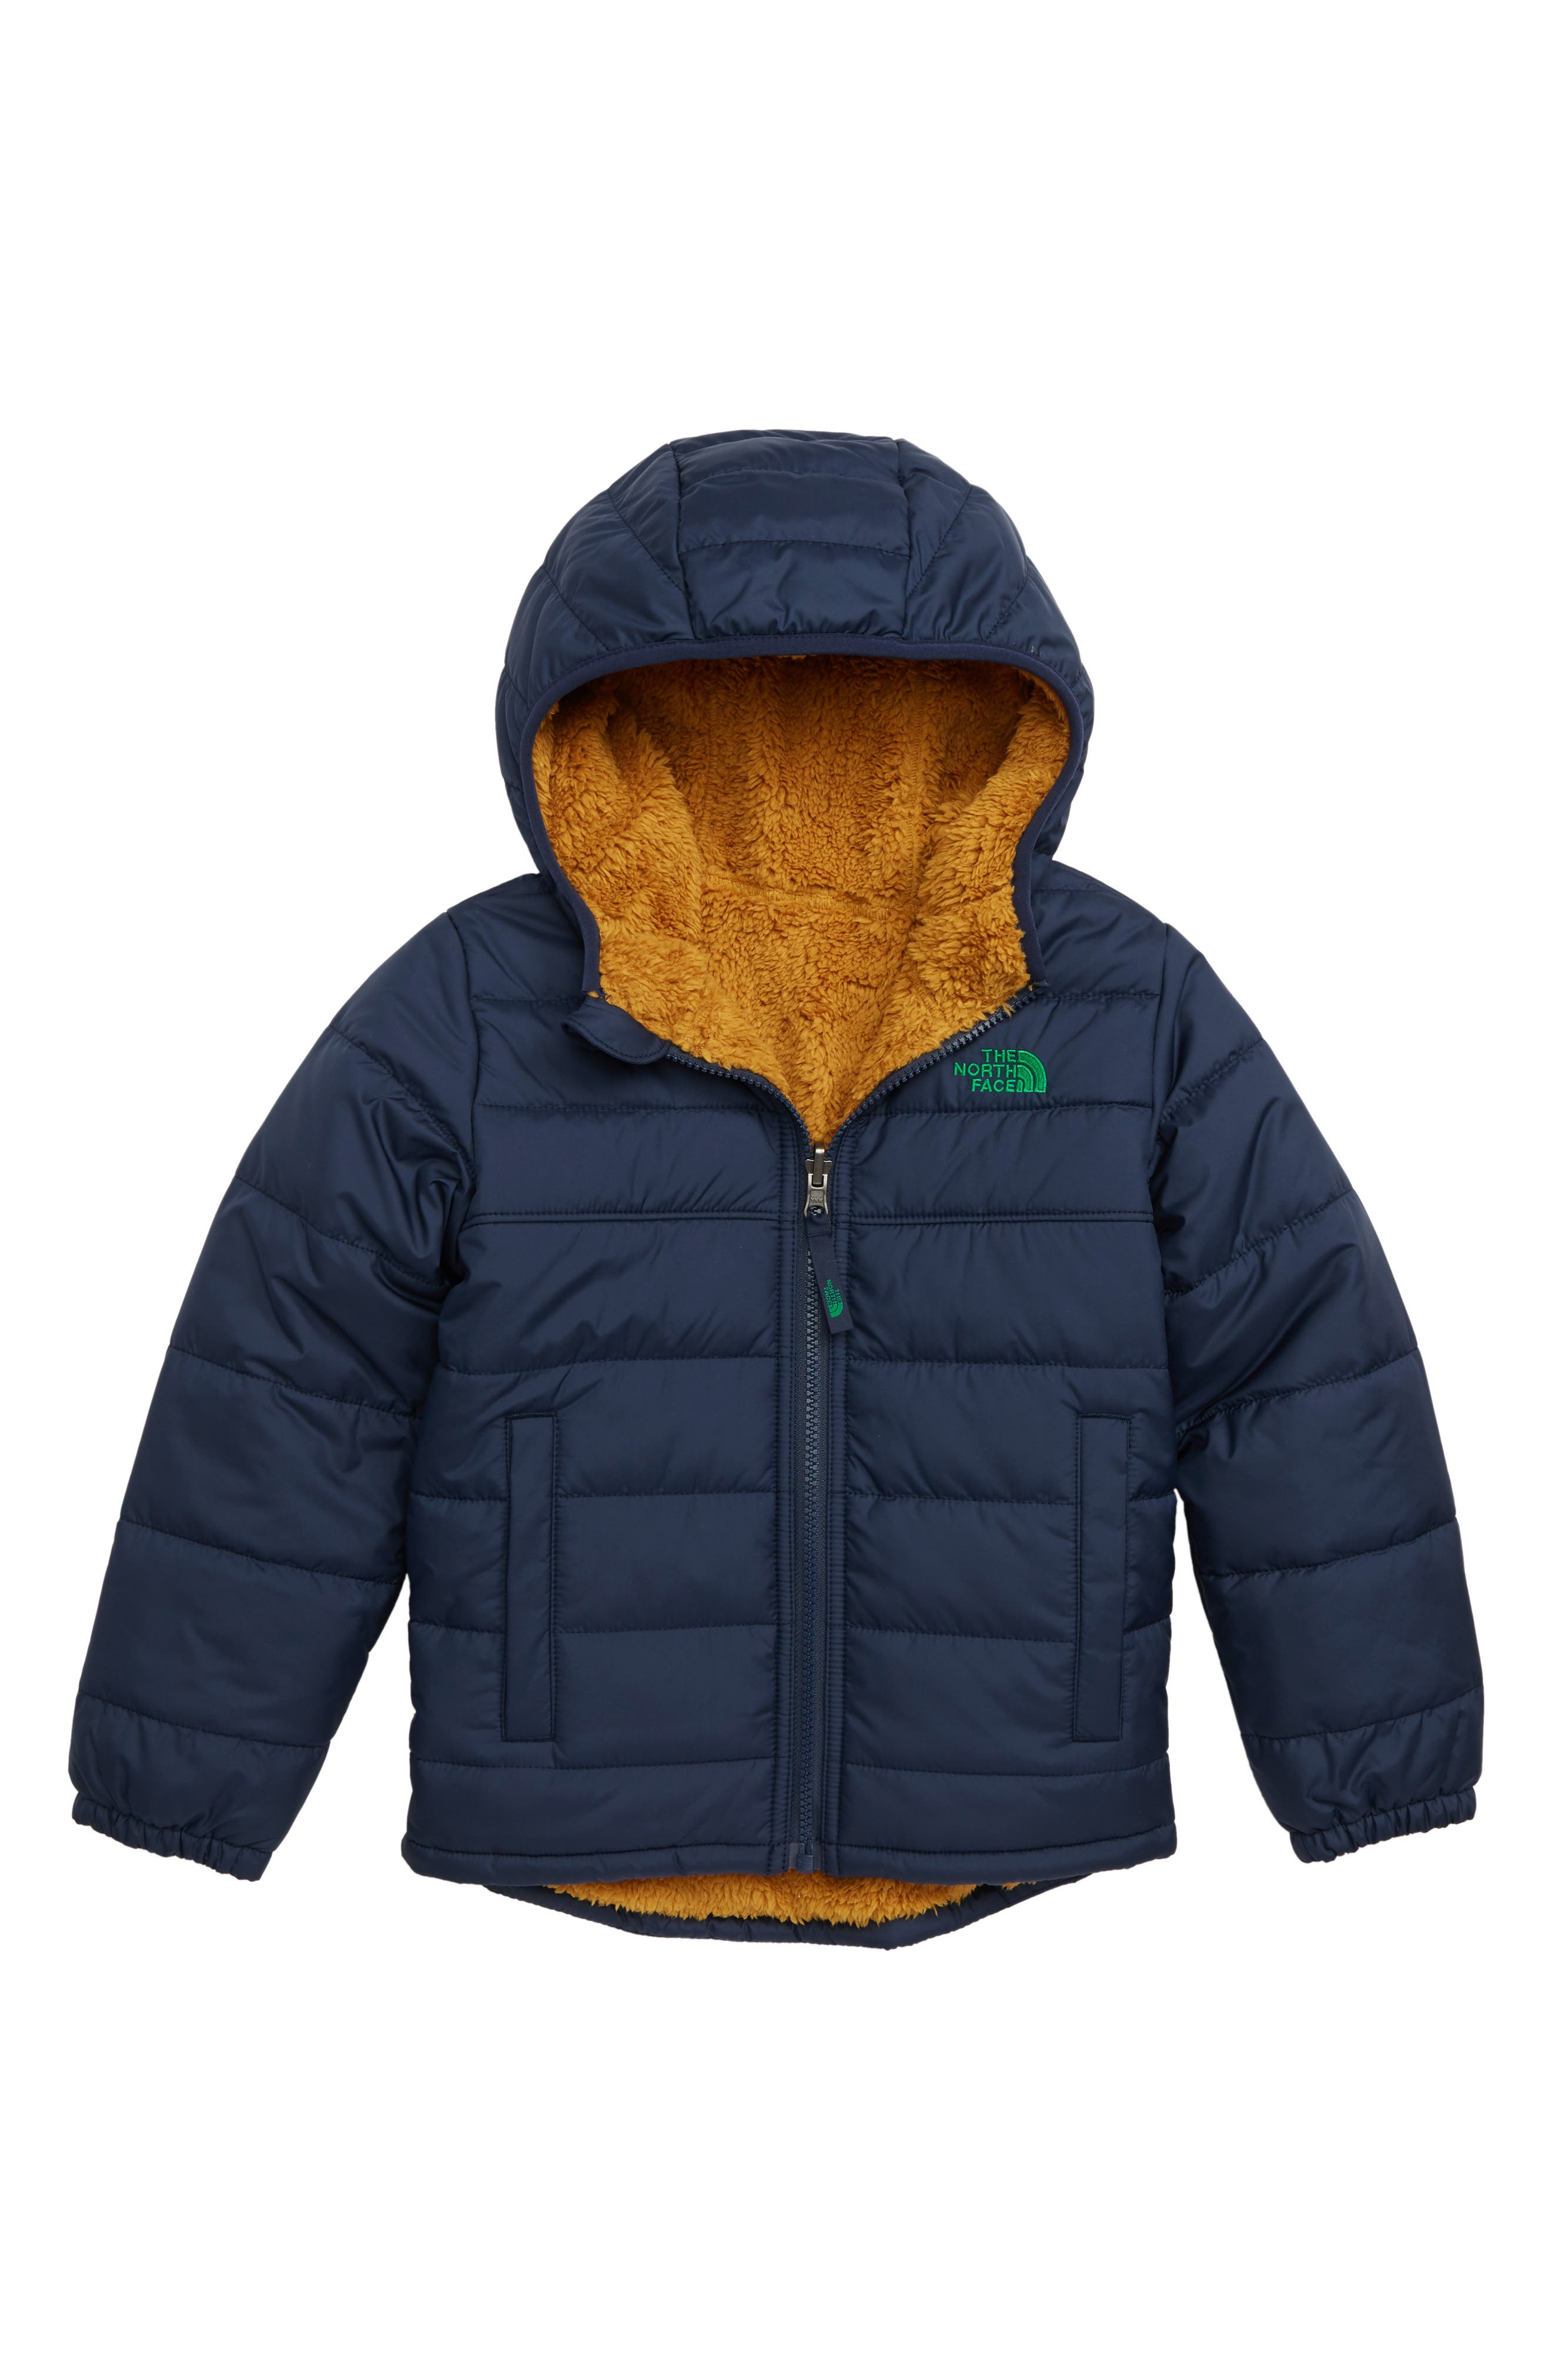 c9b007d60 promo code for the north face mountain guide gore tex shell ski ...